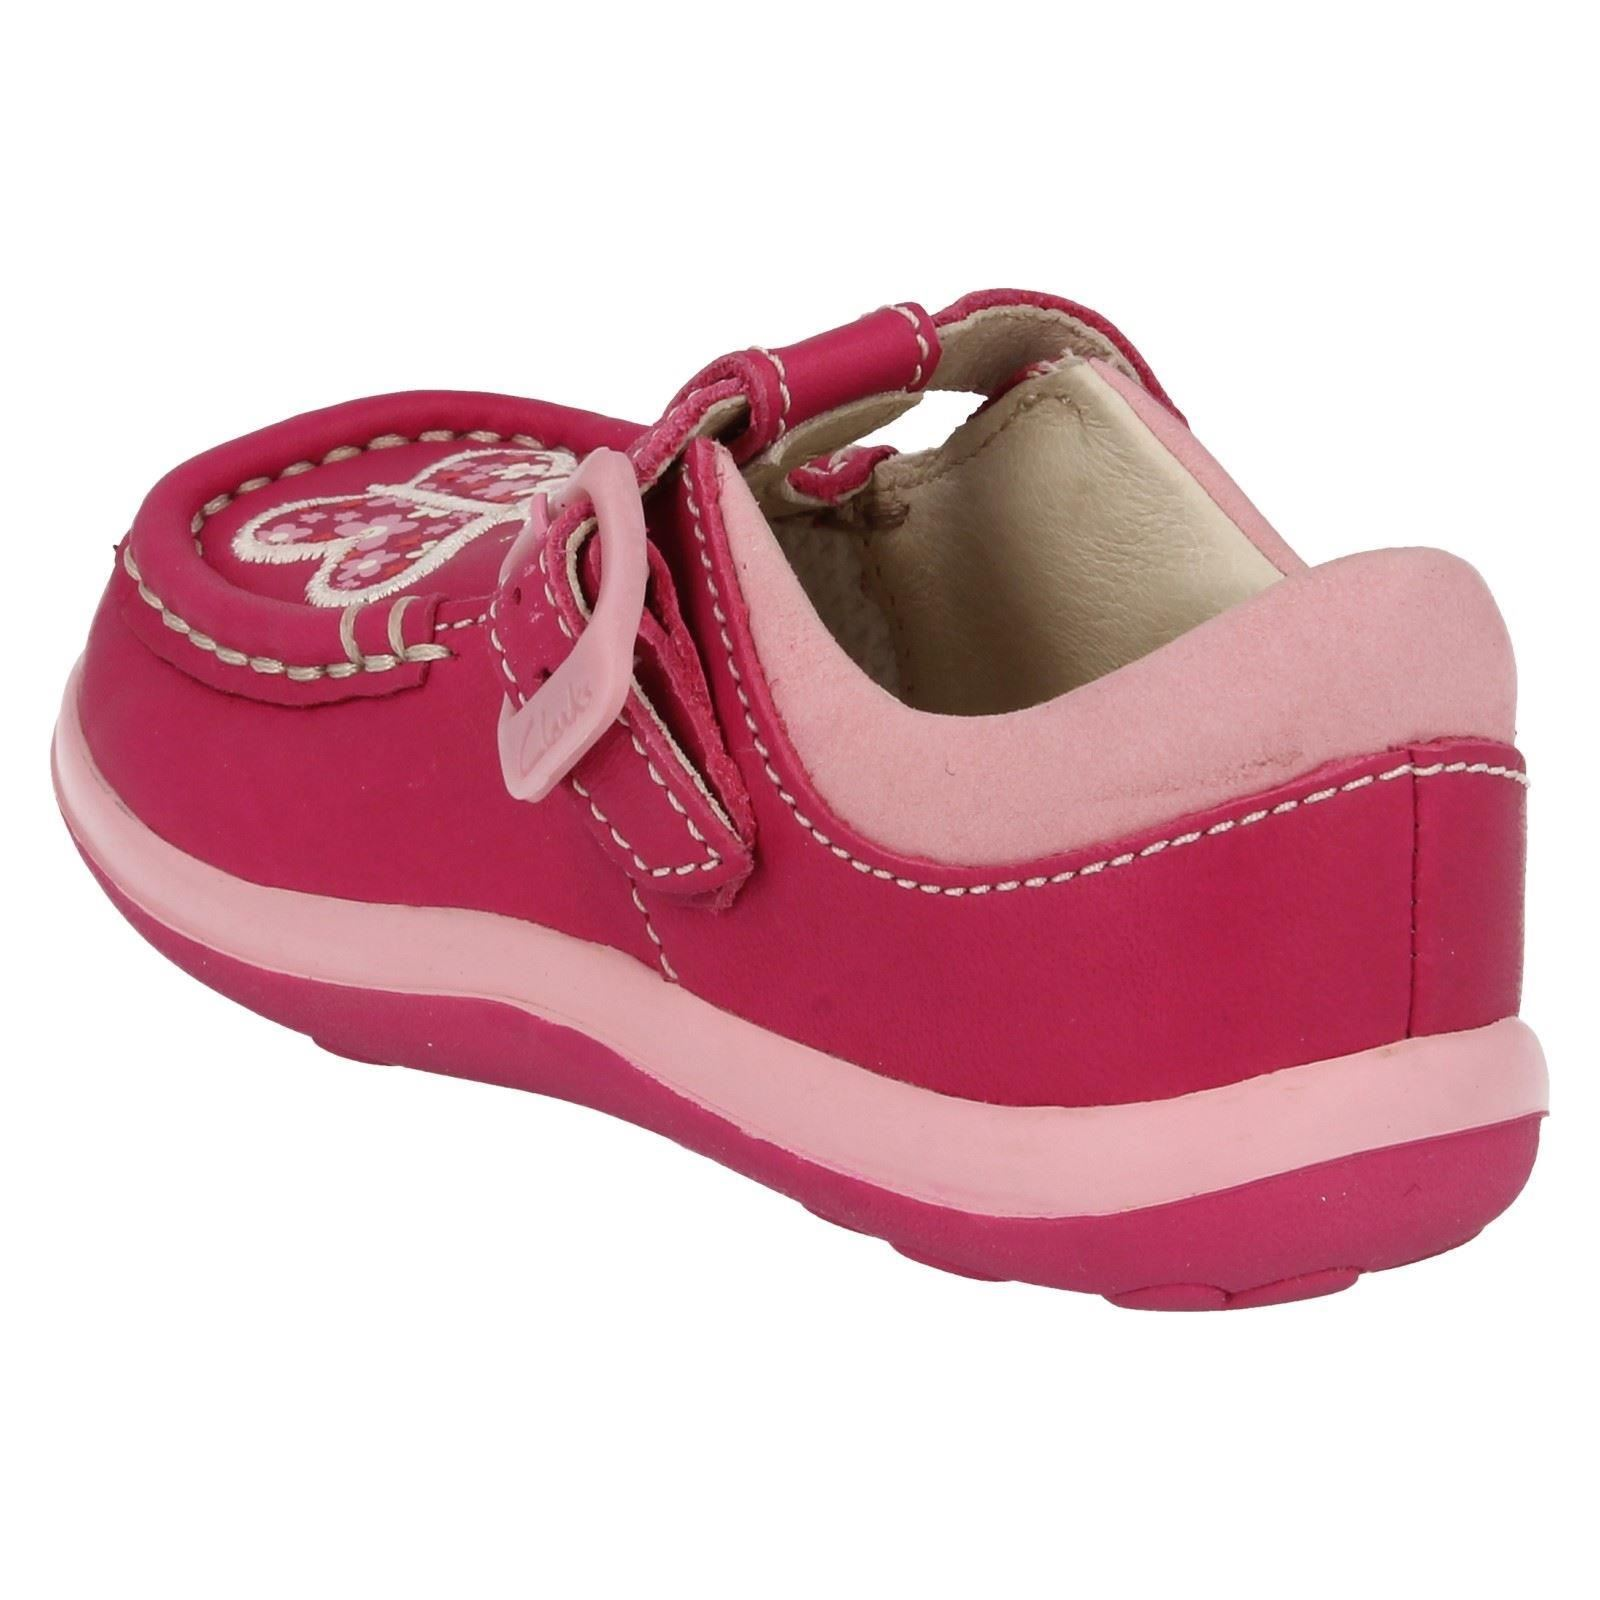 Clarks Baby First Walking Shoes